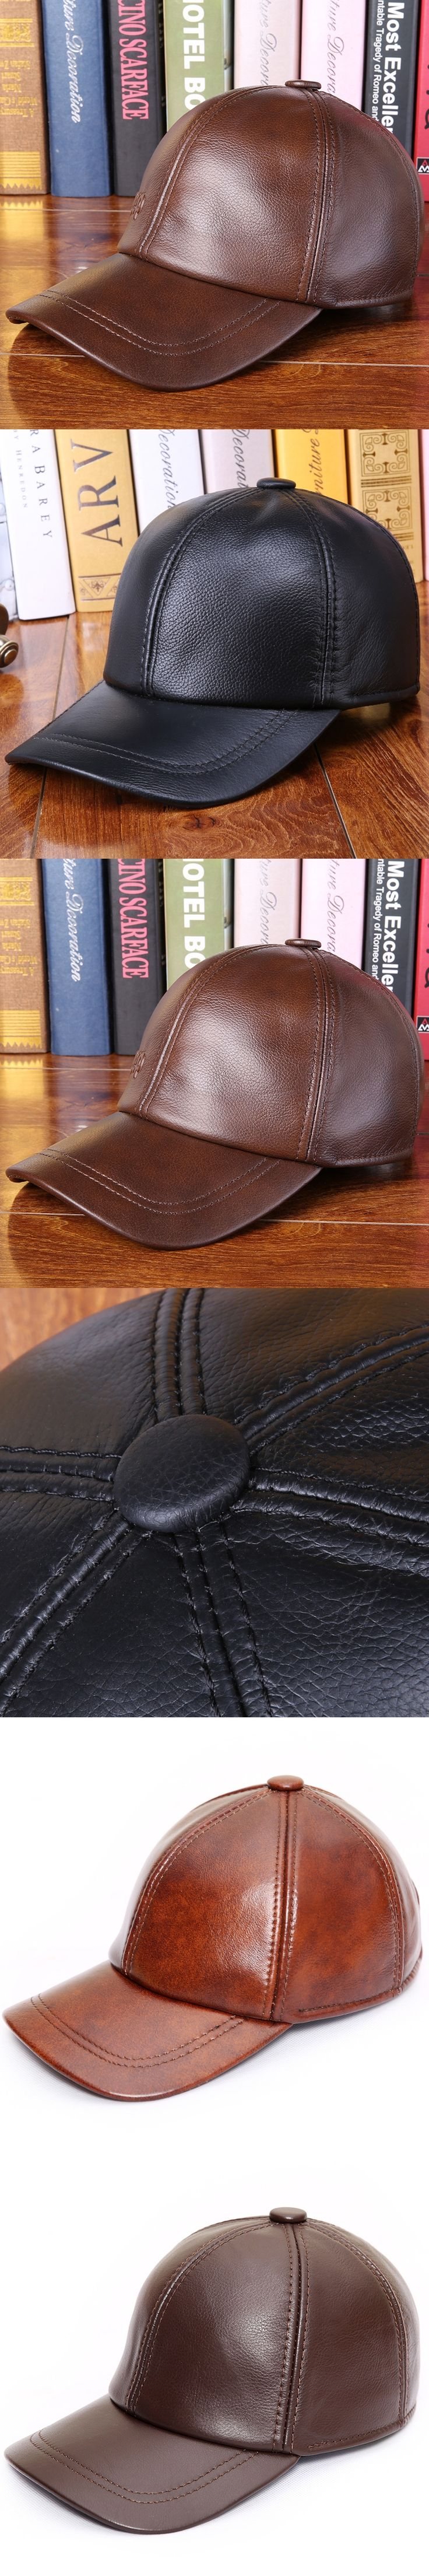 New Arrival Genuine Leather Baseball Cap Adult Autumn and Winter Outdoor Leather Cap Male Wind Proof Peaked Cap B-0608